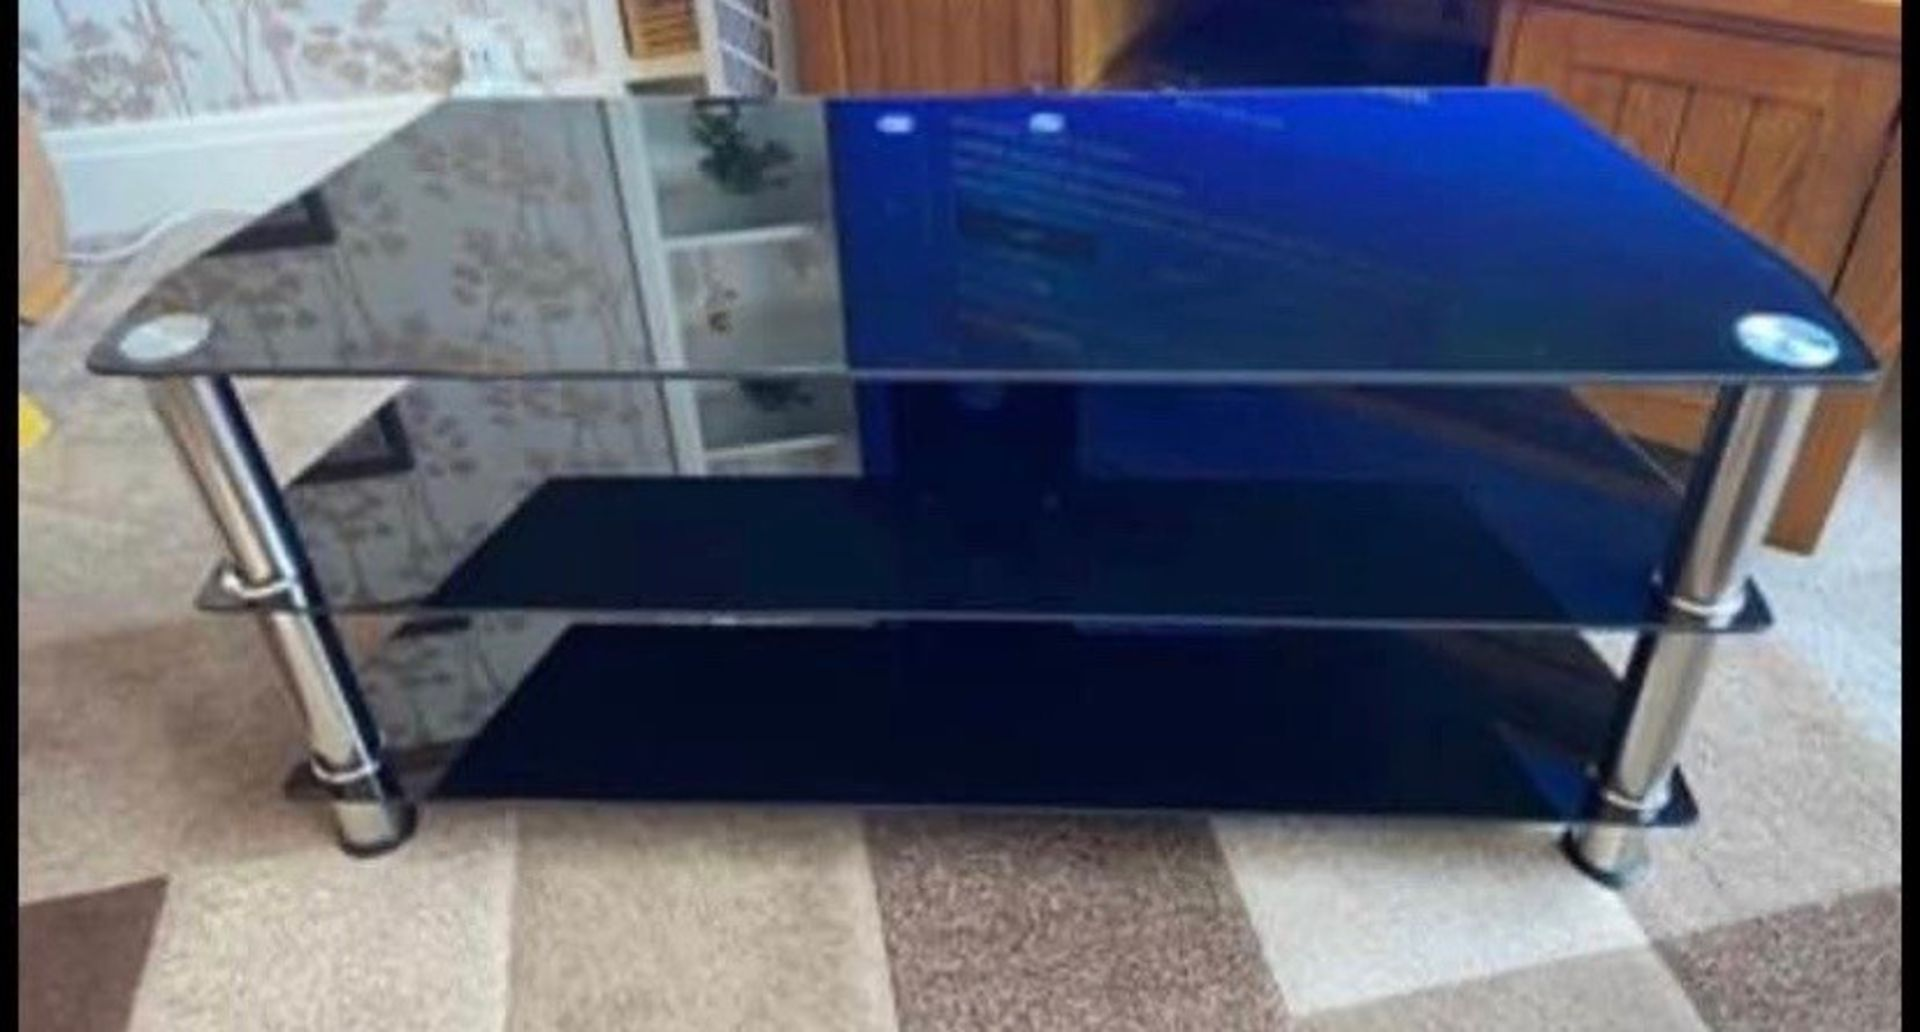 3 Tier black glass with steel tube TV stand, brand new and boxed.